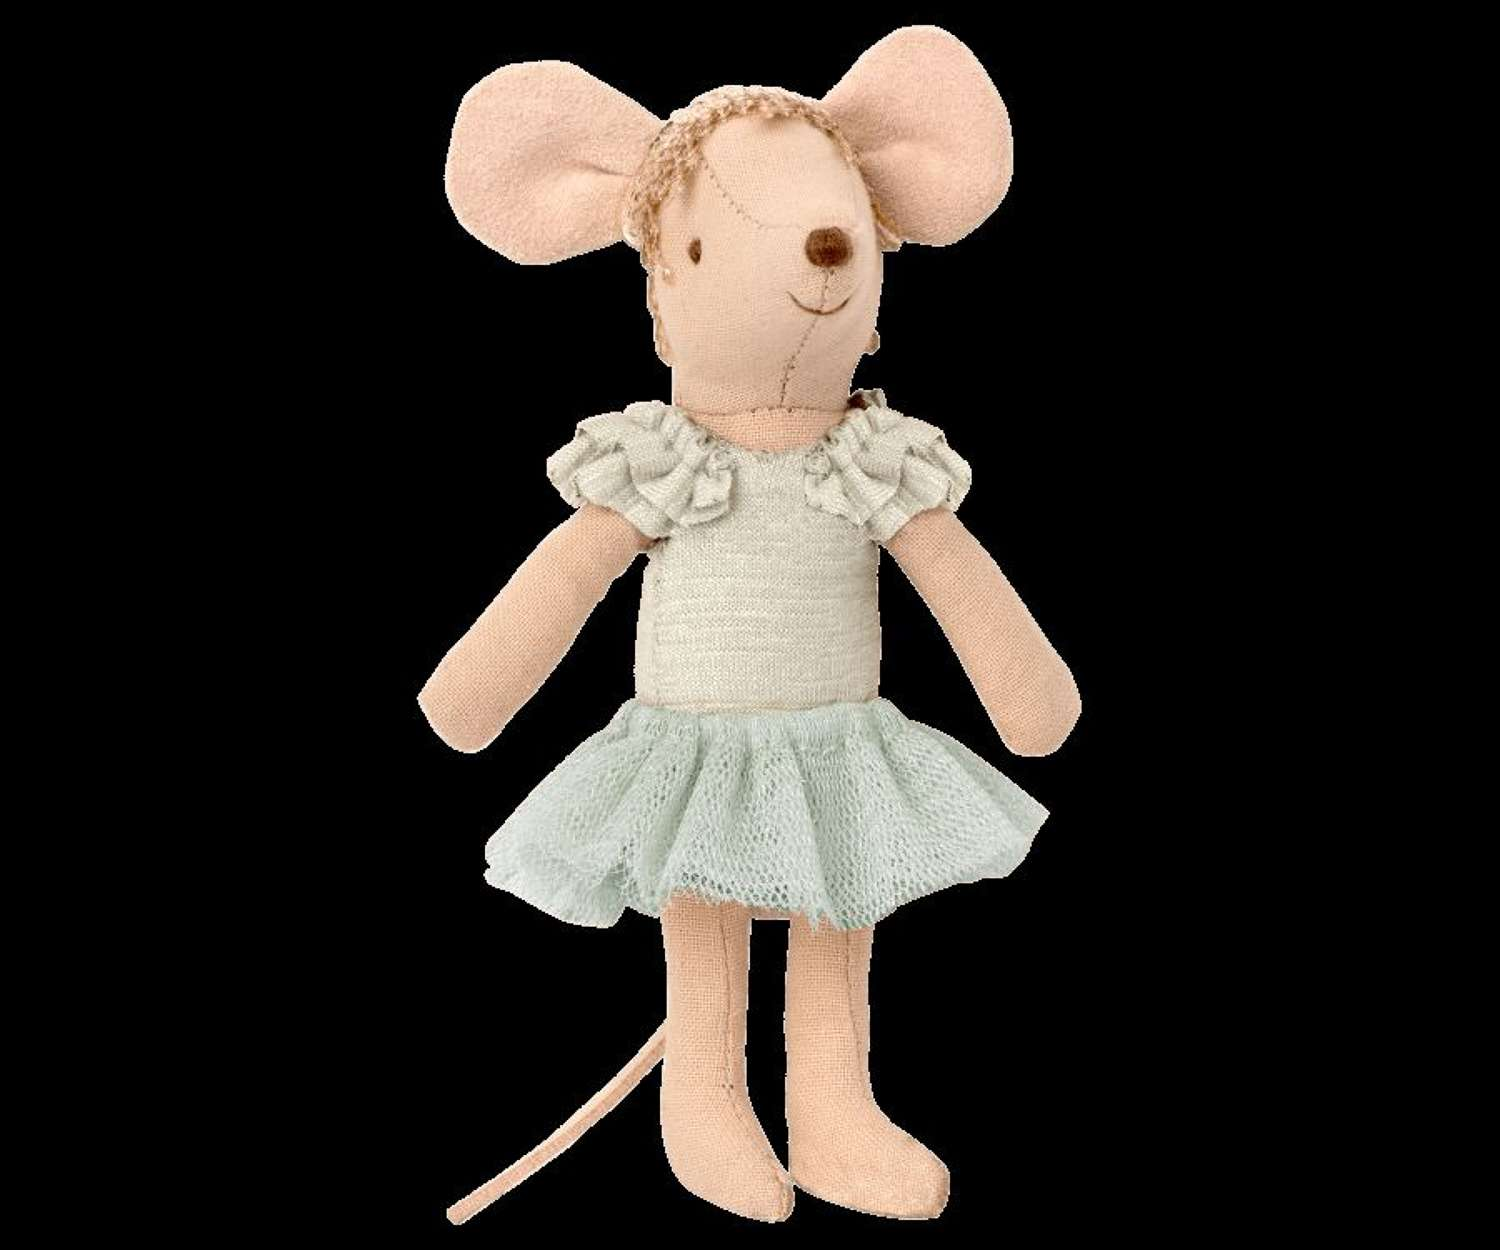 Maileg - Dance mouse Swan Lake- with ballet outfit & magnets on hands